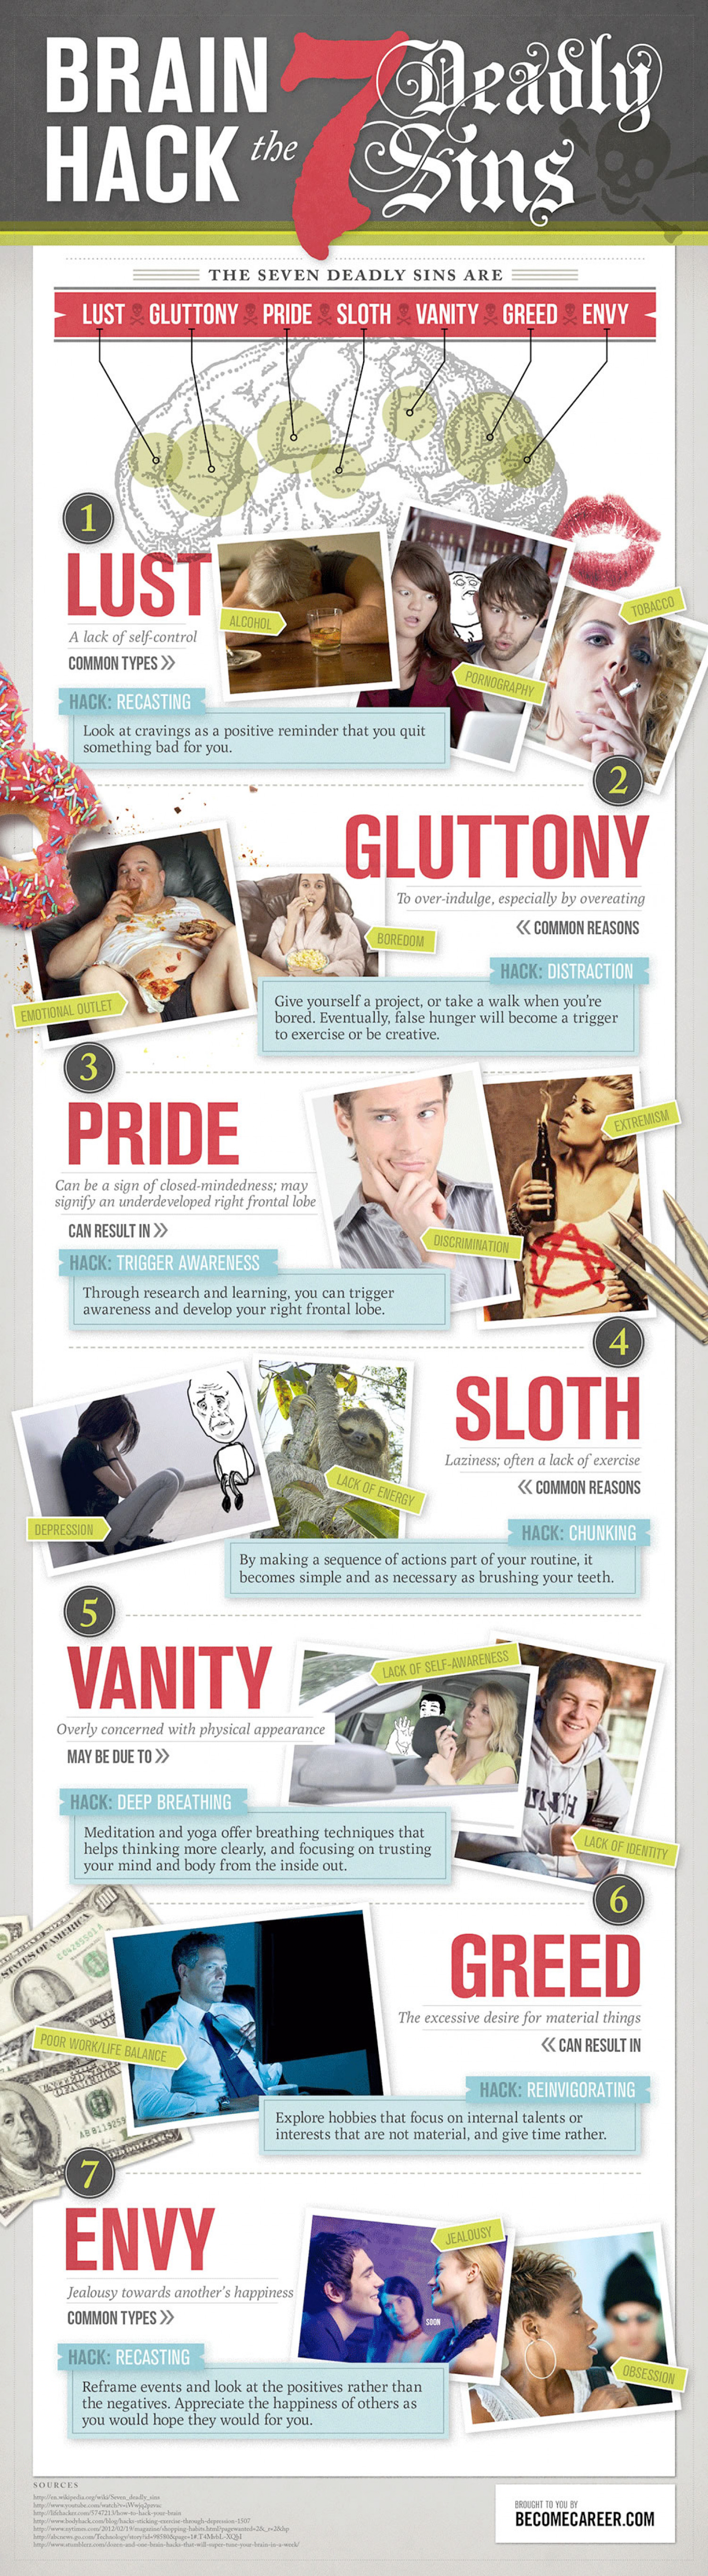 Brain Hack the Seven Deadly Sins Infographic